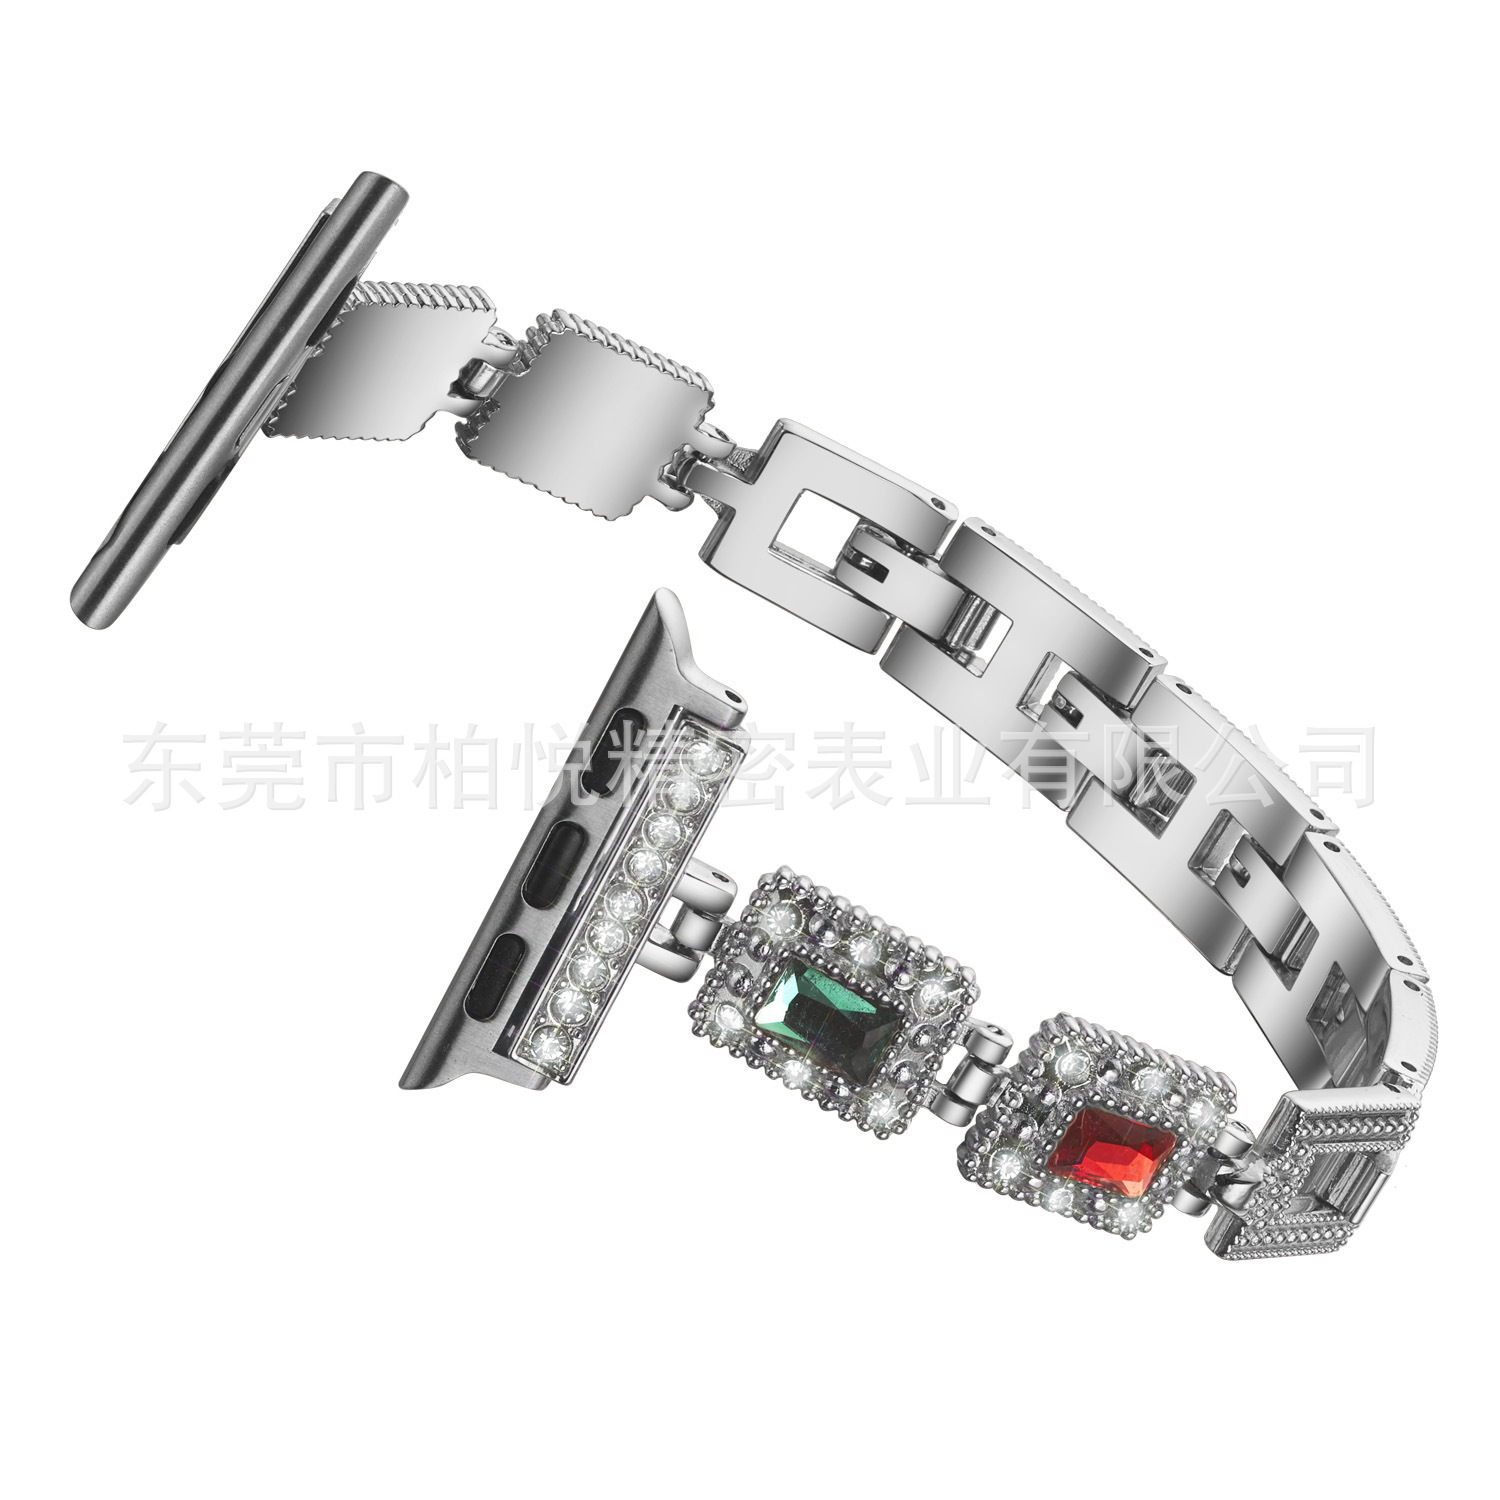 Suitable For Apple Watch Strap APPLE Watch5vo Diamond Set Stainless Steel Metal Watch Band IWatch